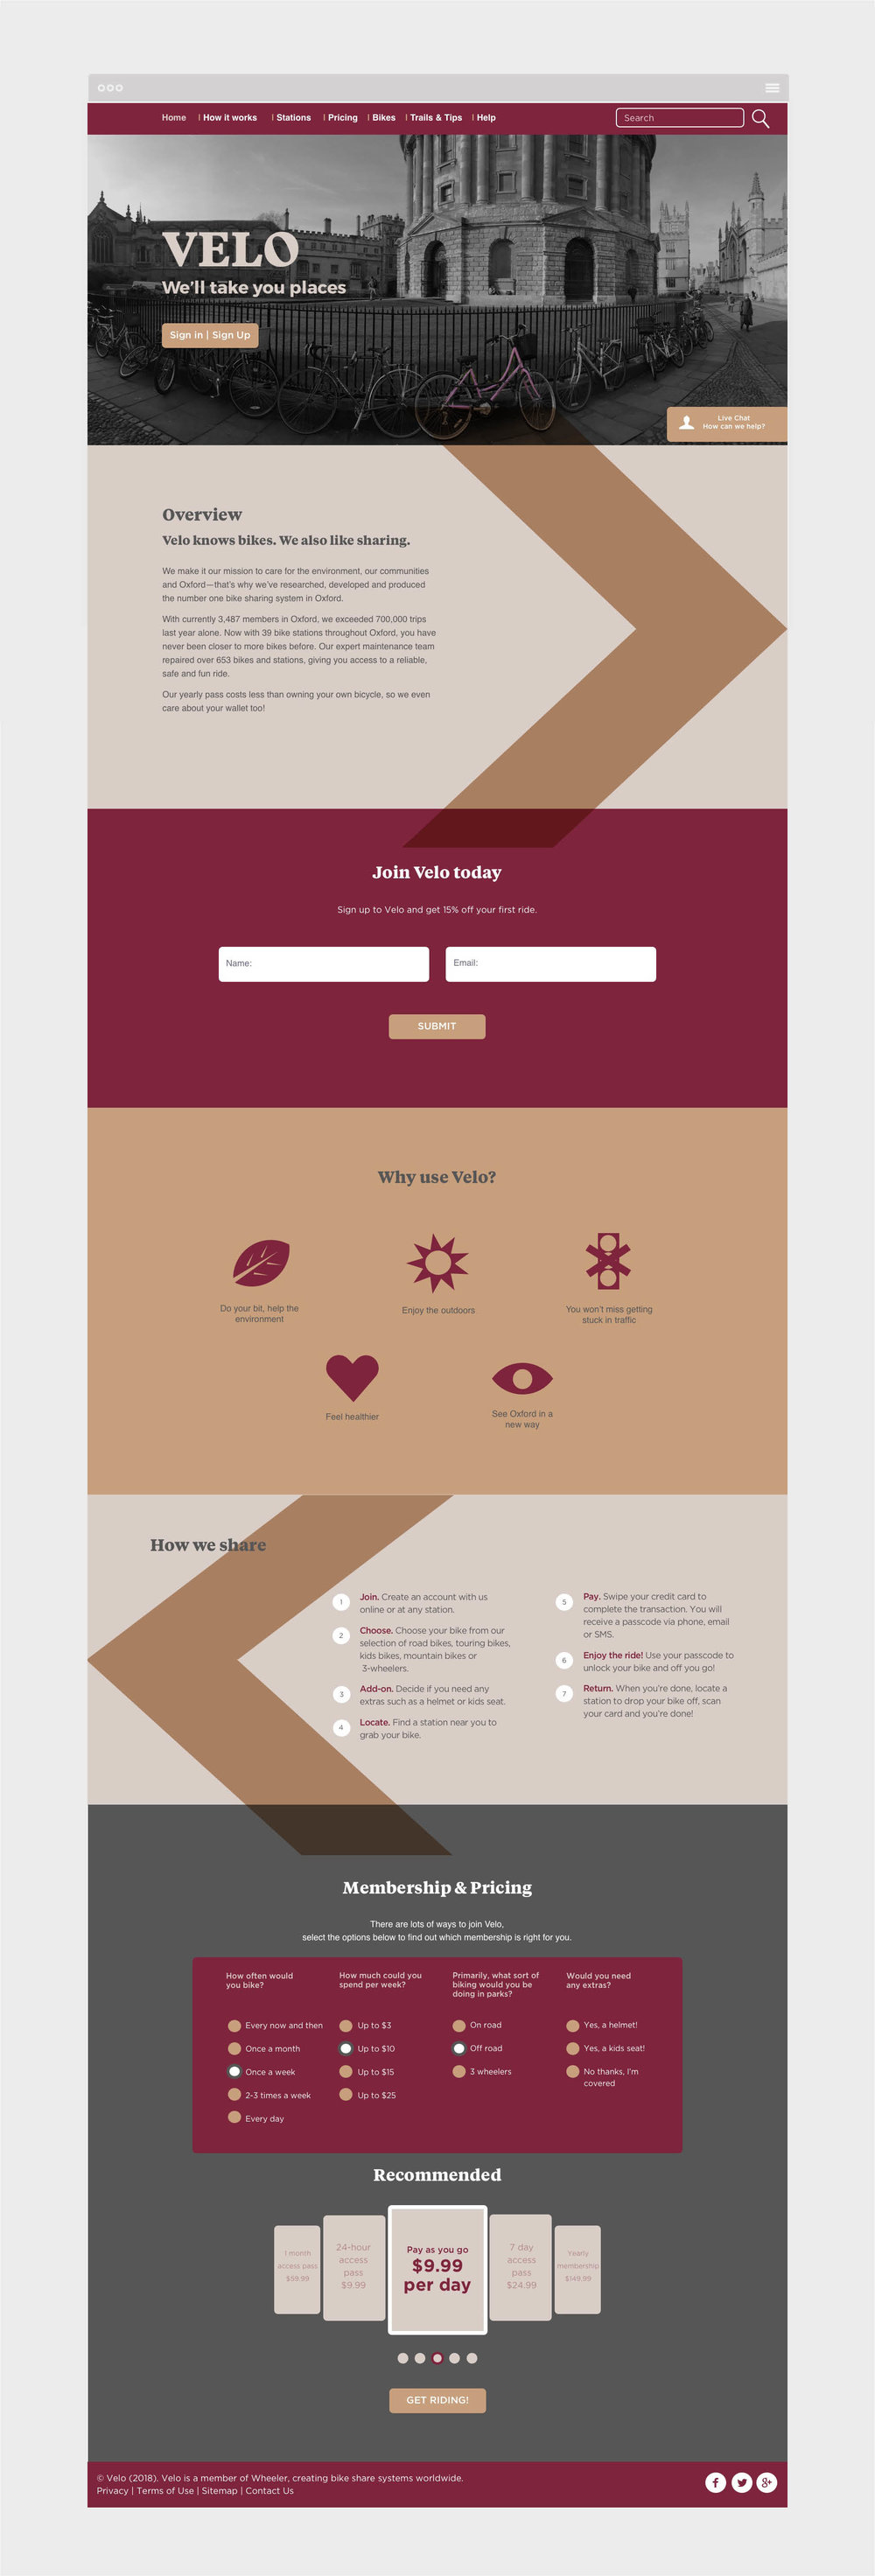 Desktop Website Mockup.jpg